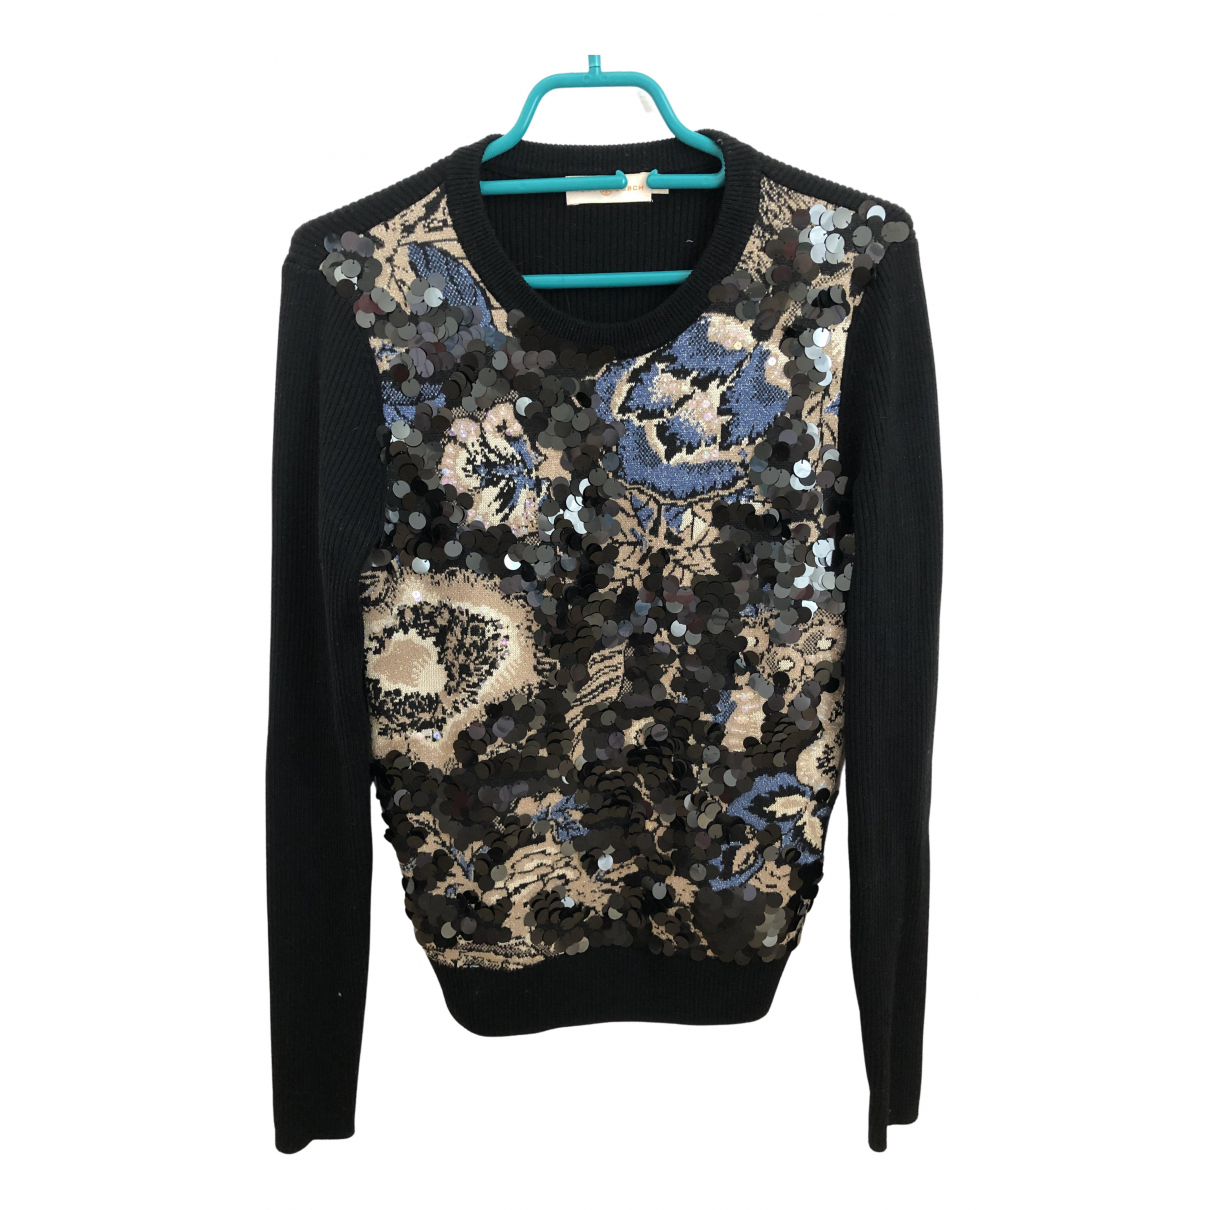 Tory Burch \N Pullover in  Schwarz Wolle